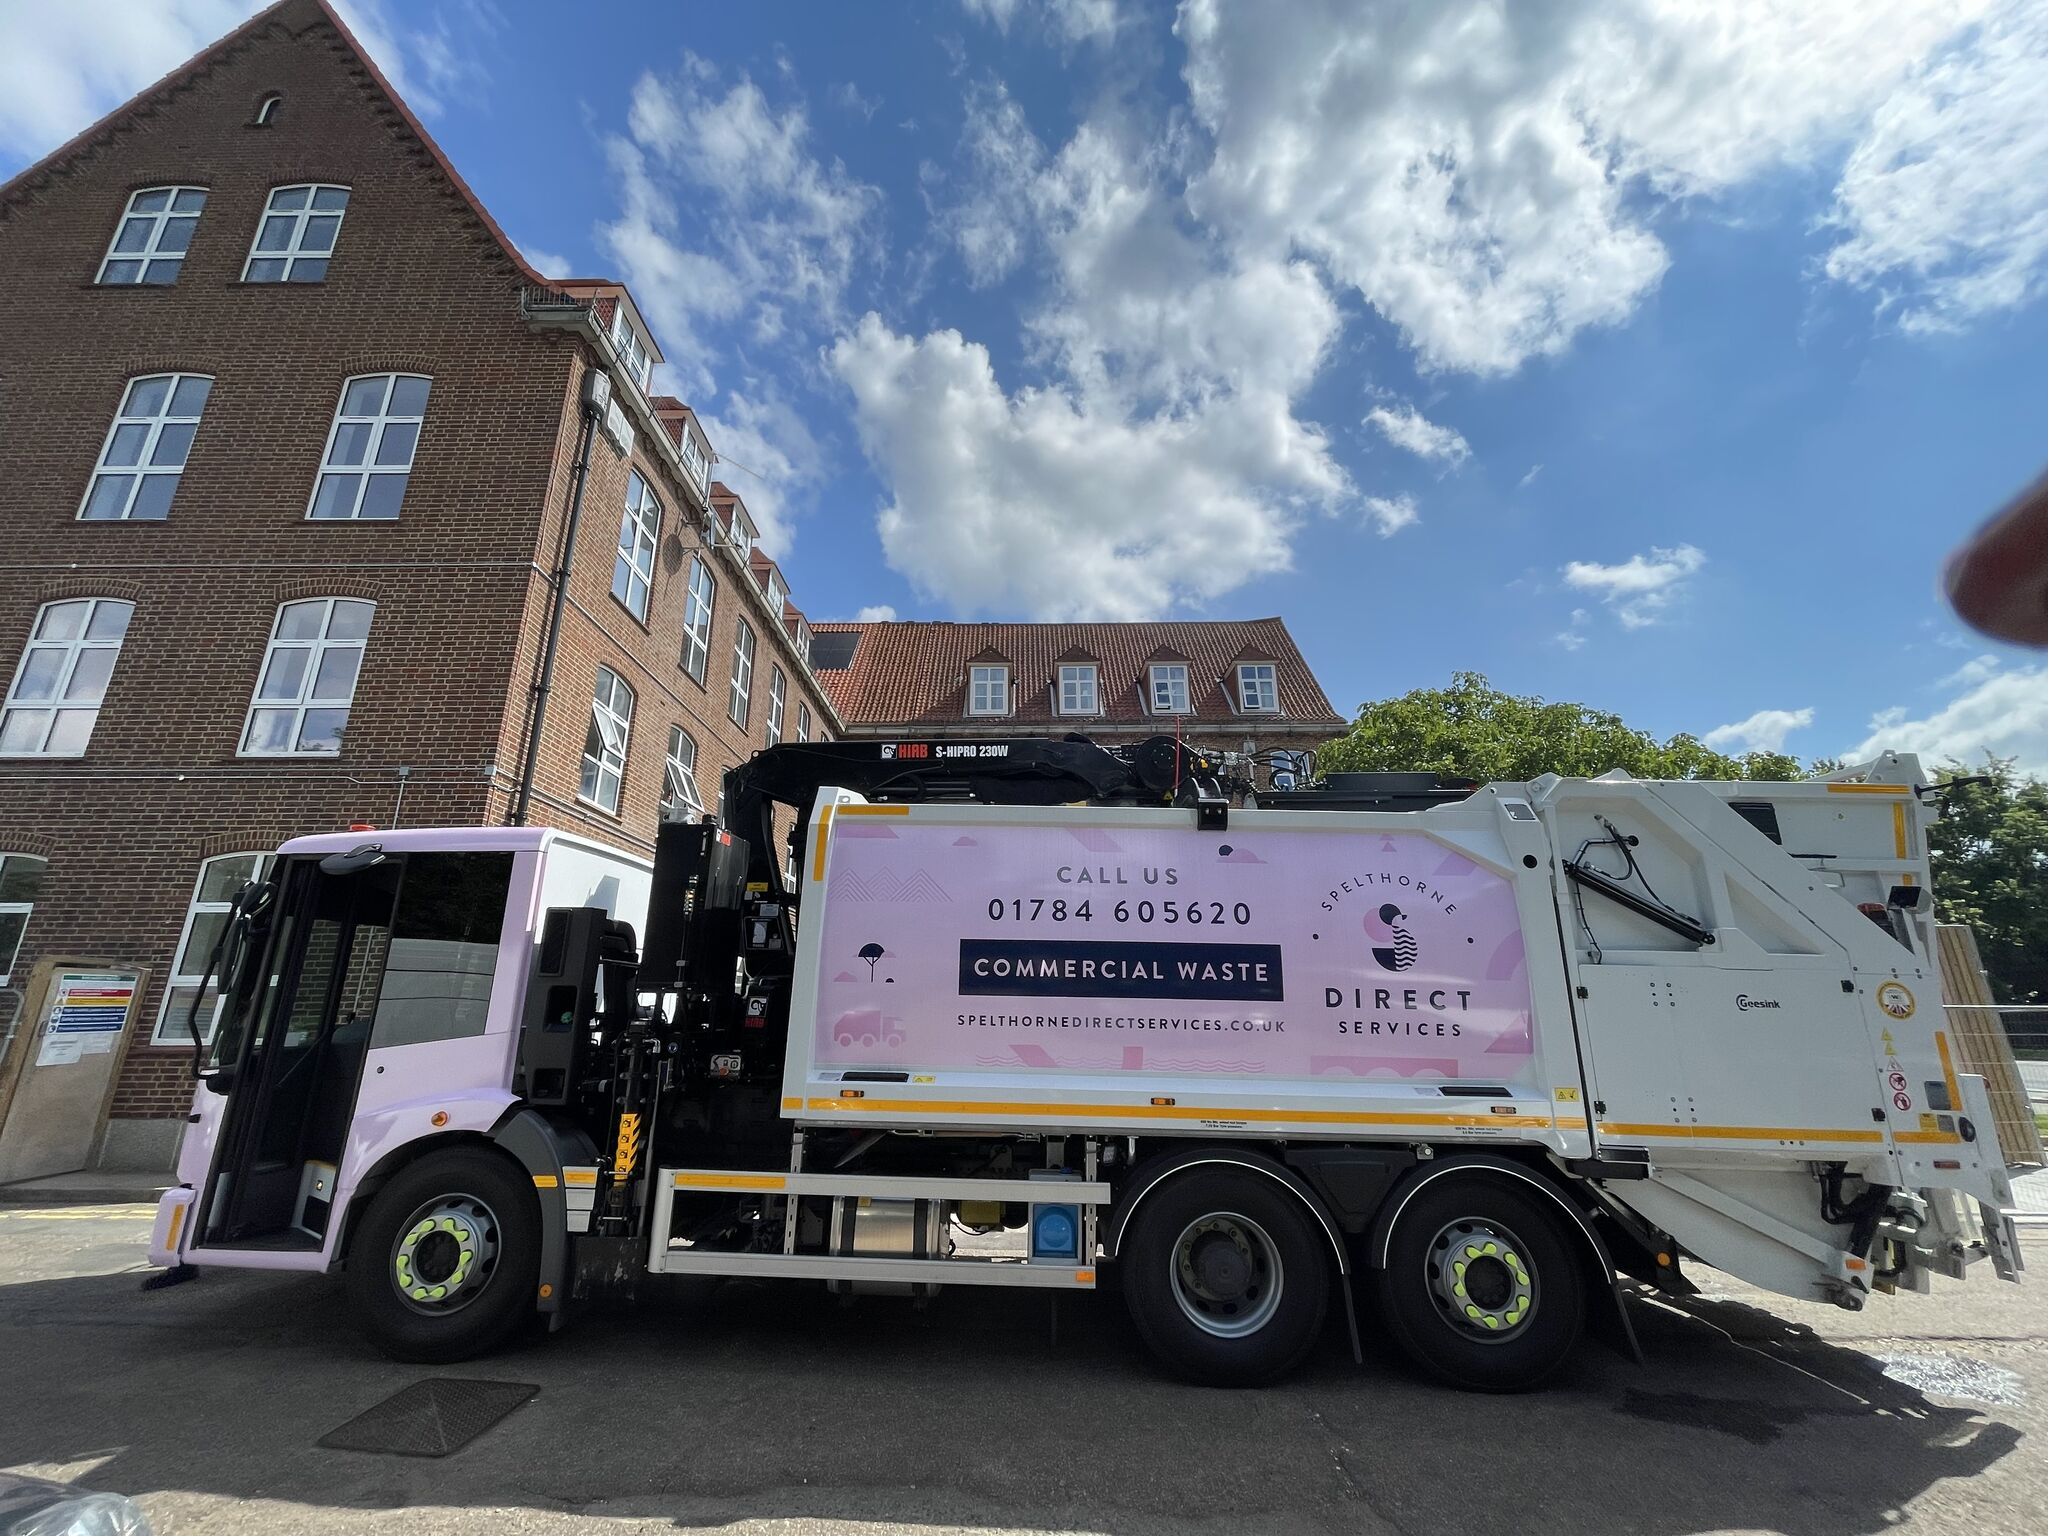 New Commercial Waste Collection Vehicle